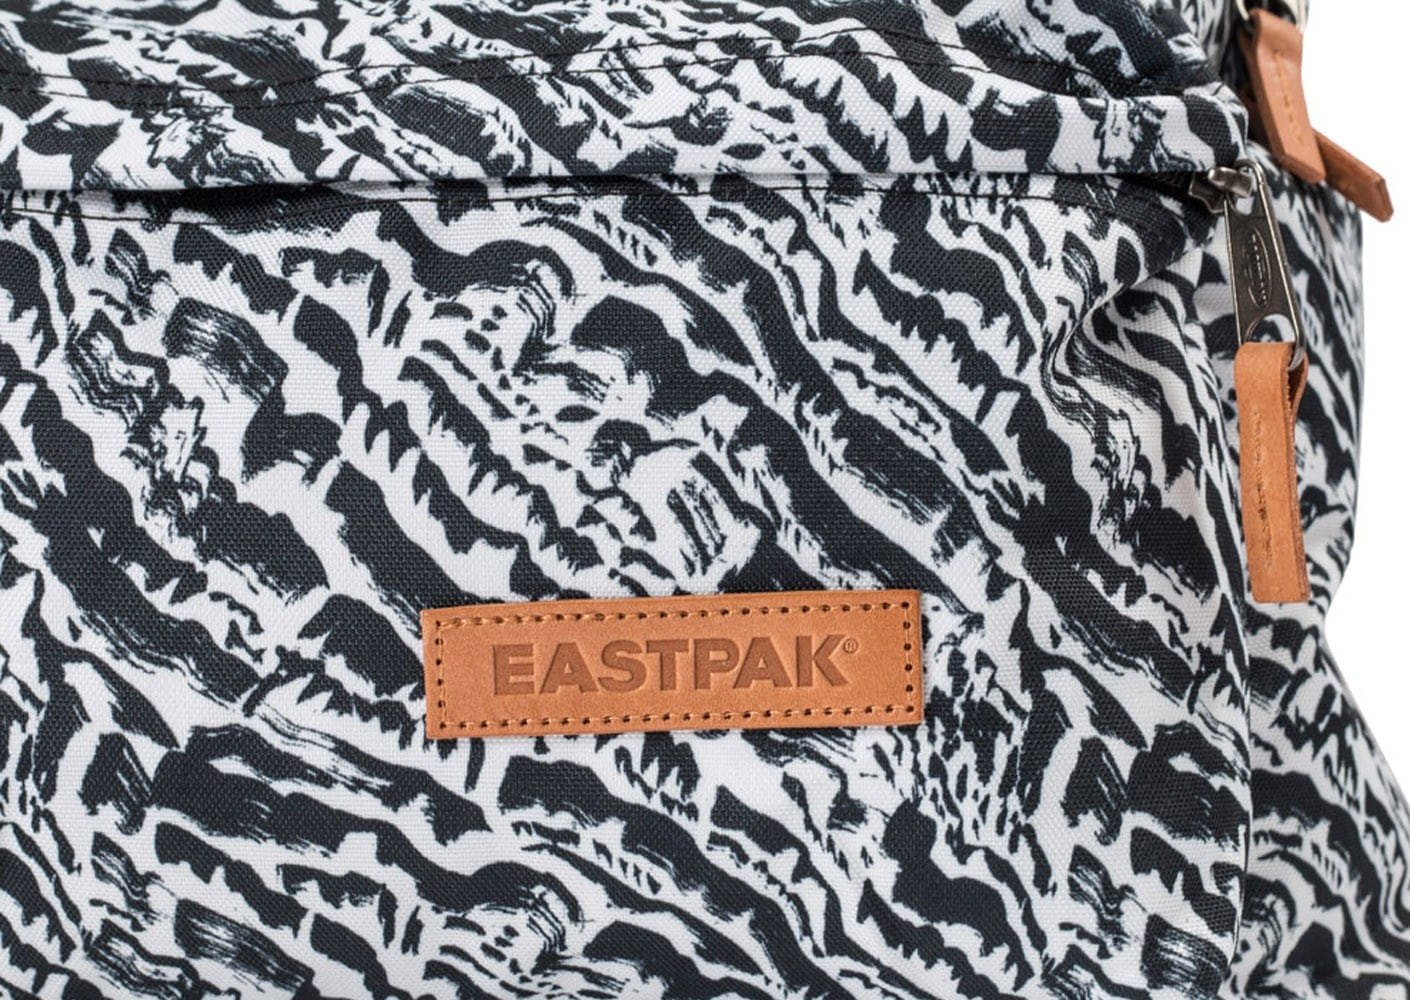 Dos À Padded Et Pak'r Zebra Sac Black Chaussures Friday Eastpak FulKc5J31T